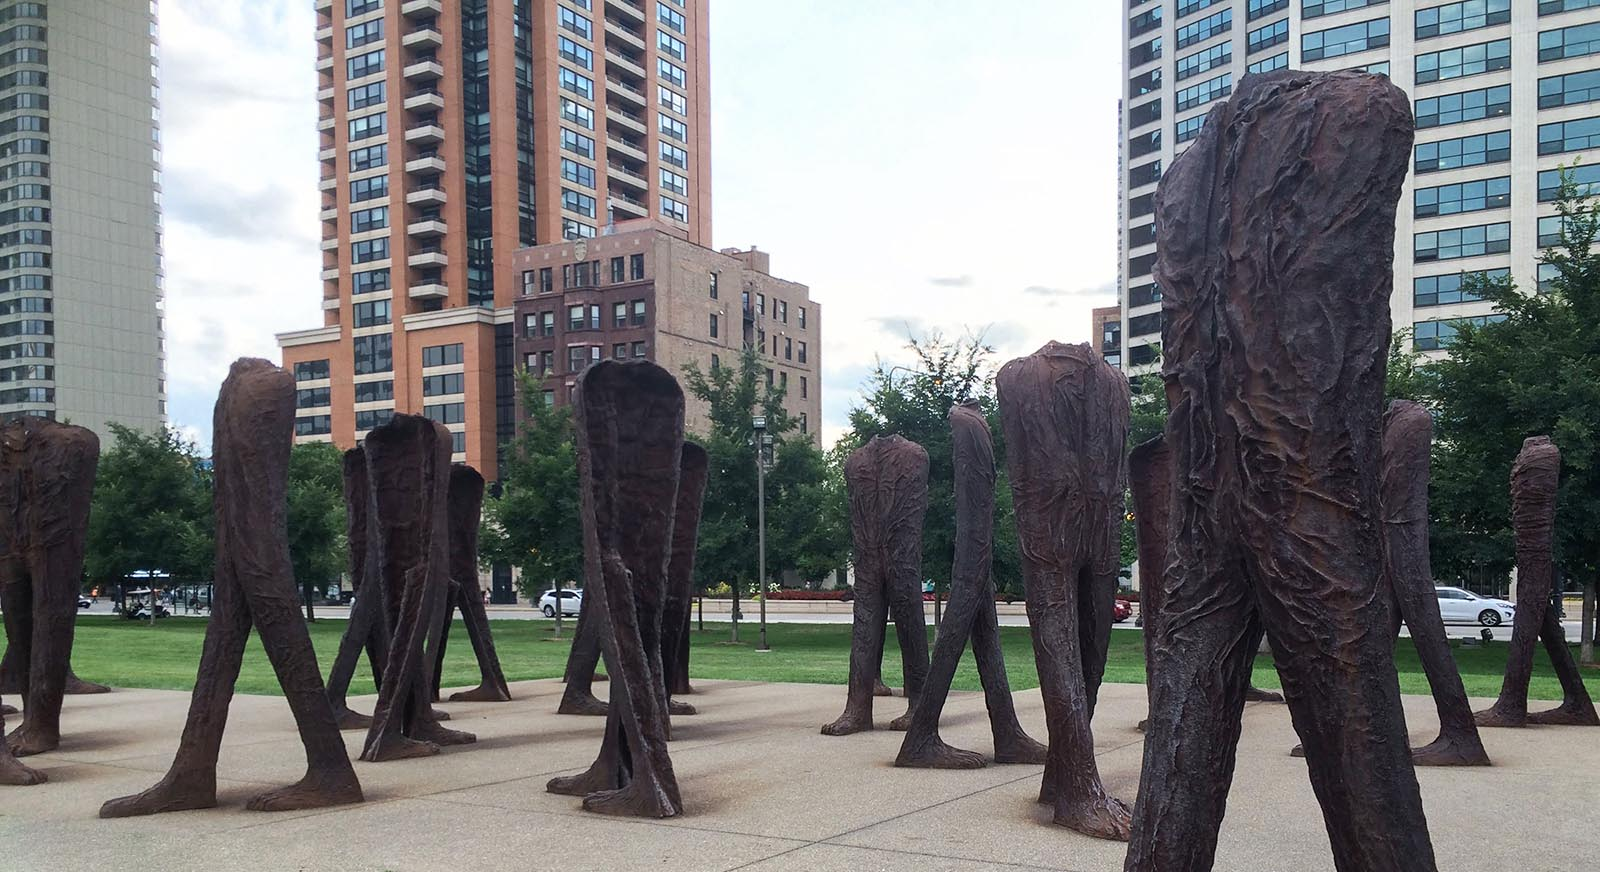 Headless sculptures in Chicago - Alzheimers Conference